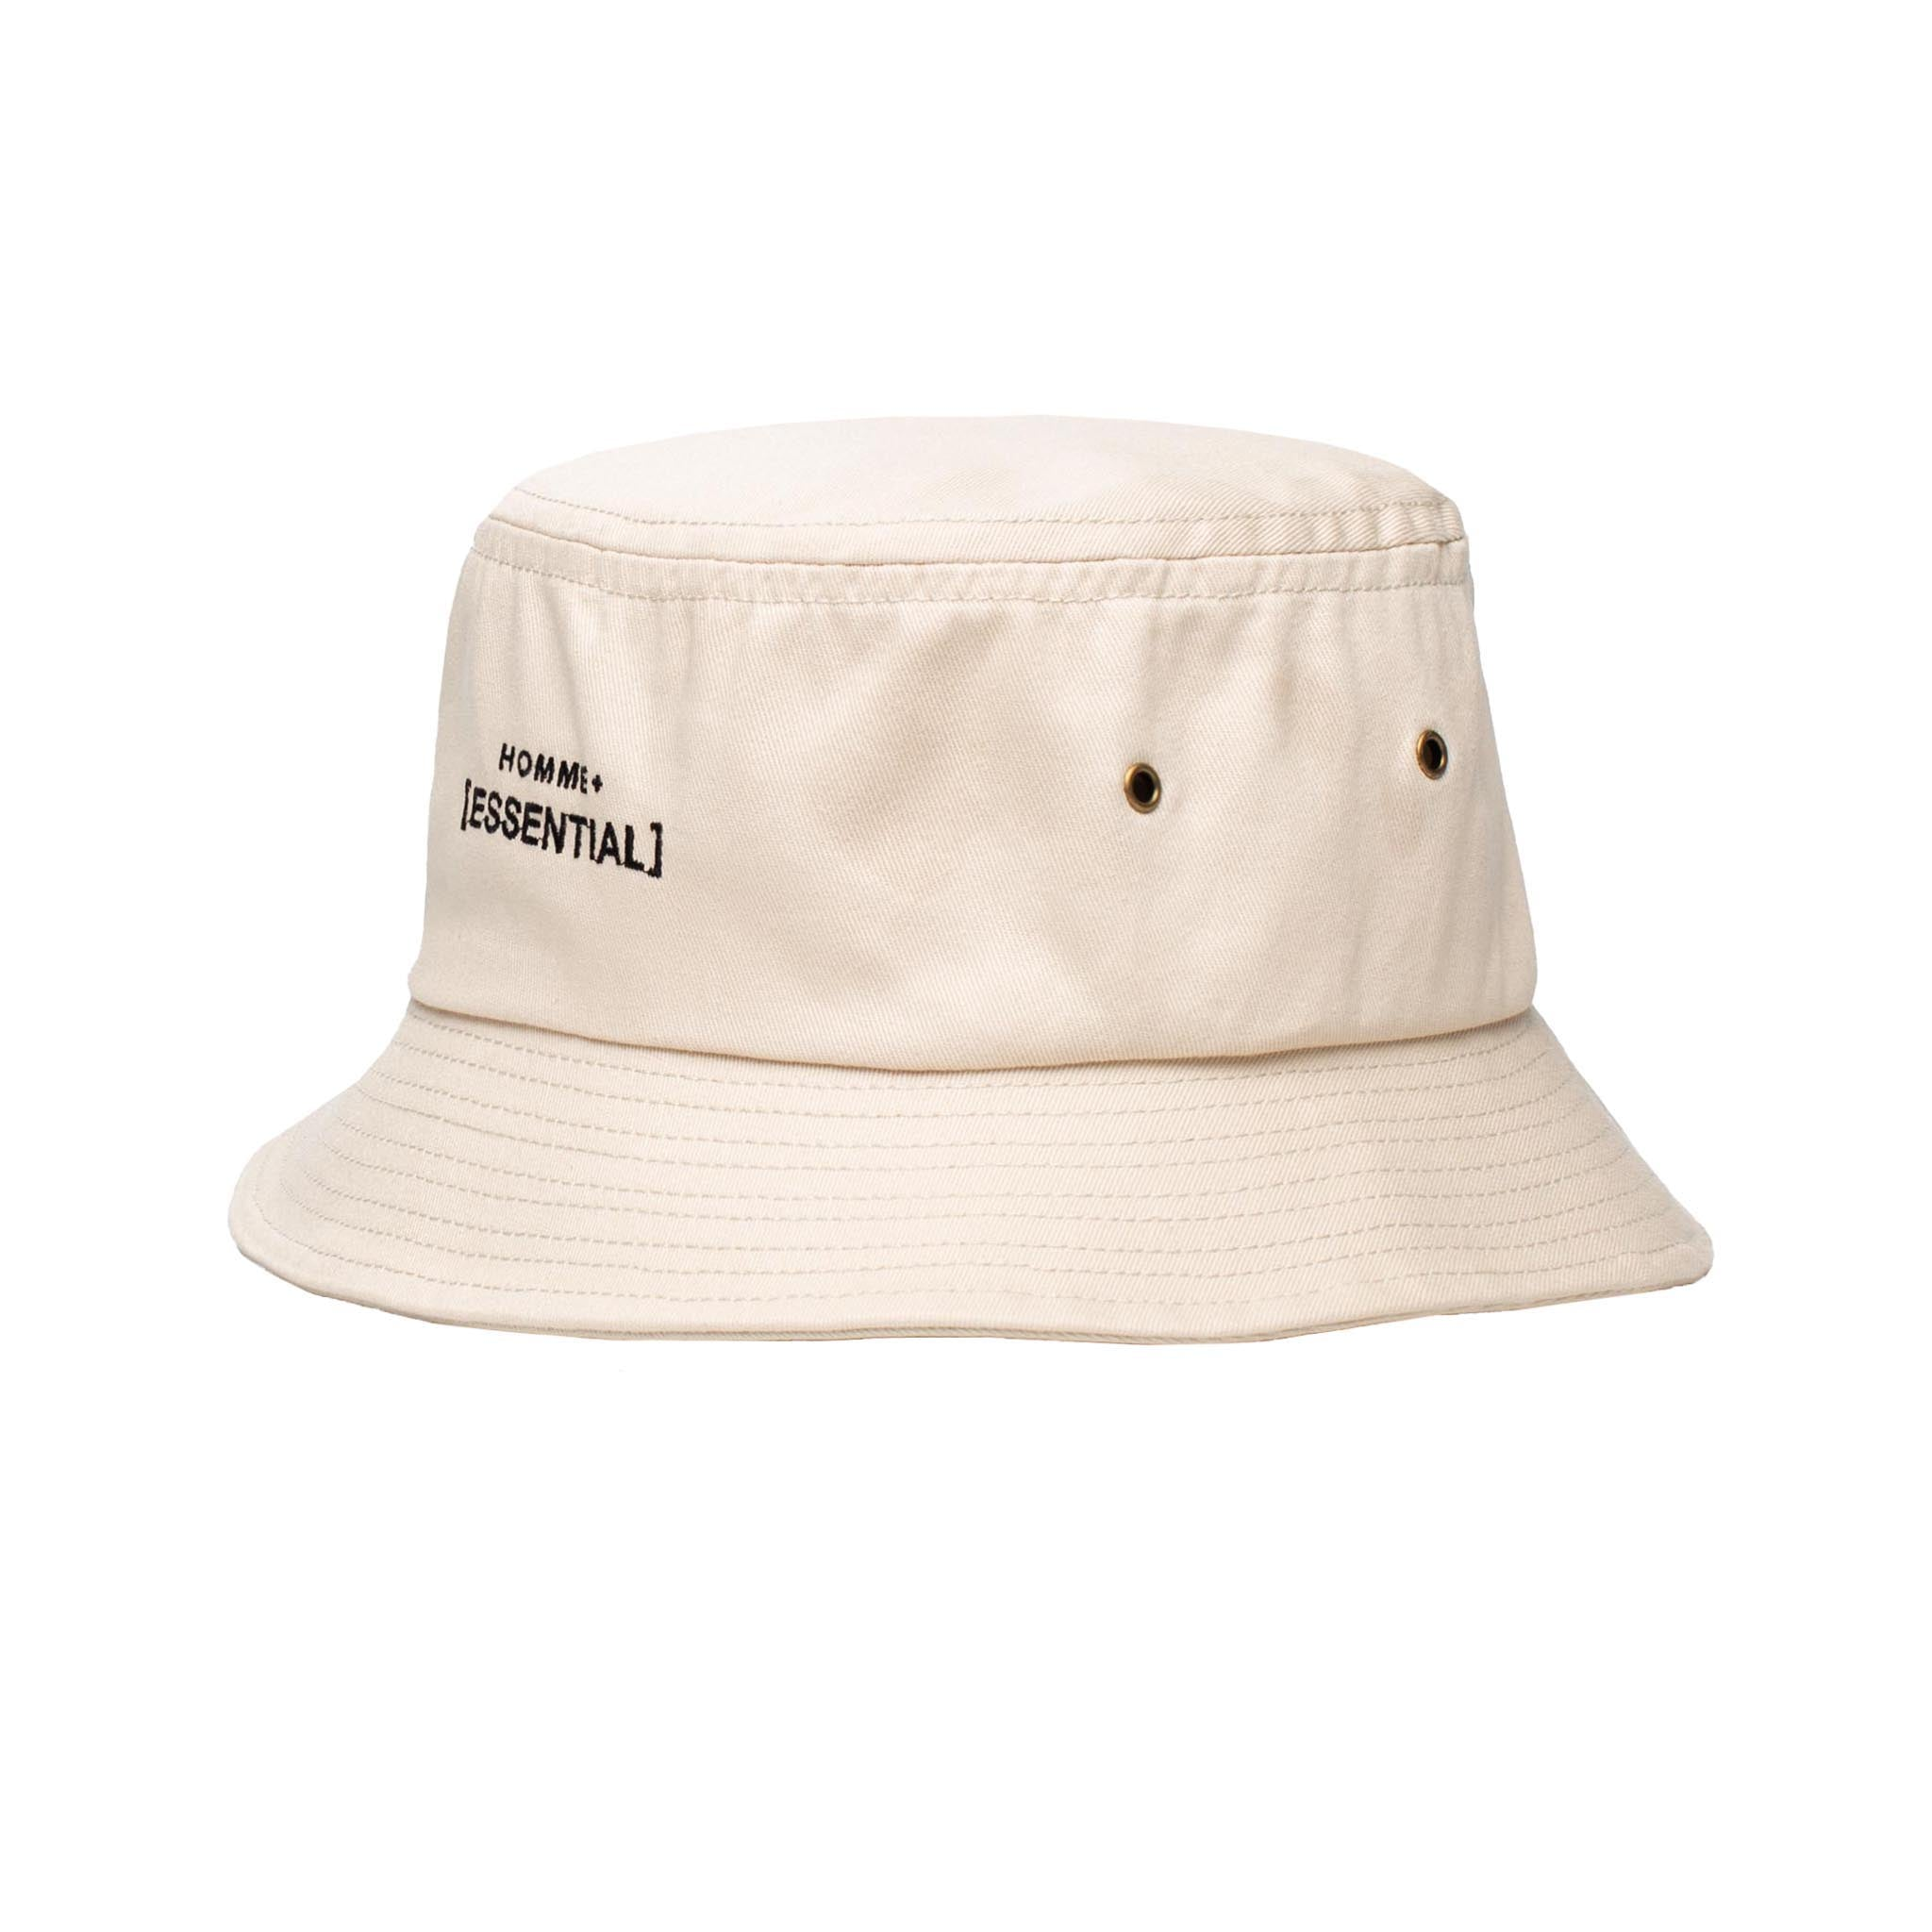 HOMME+ ESSENTIAL Bucket Hat Beige